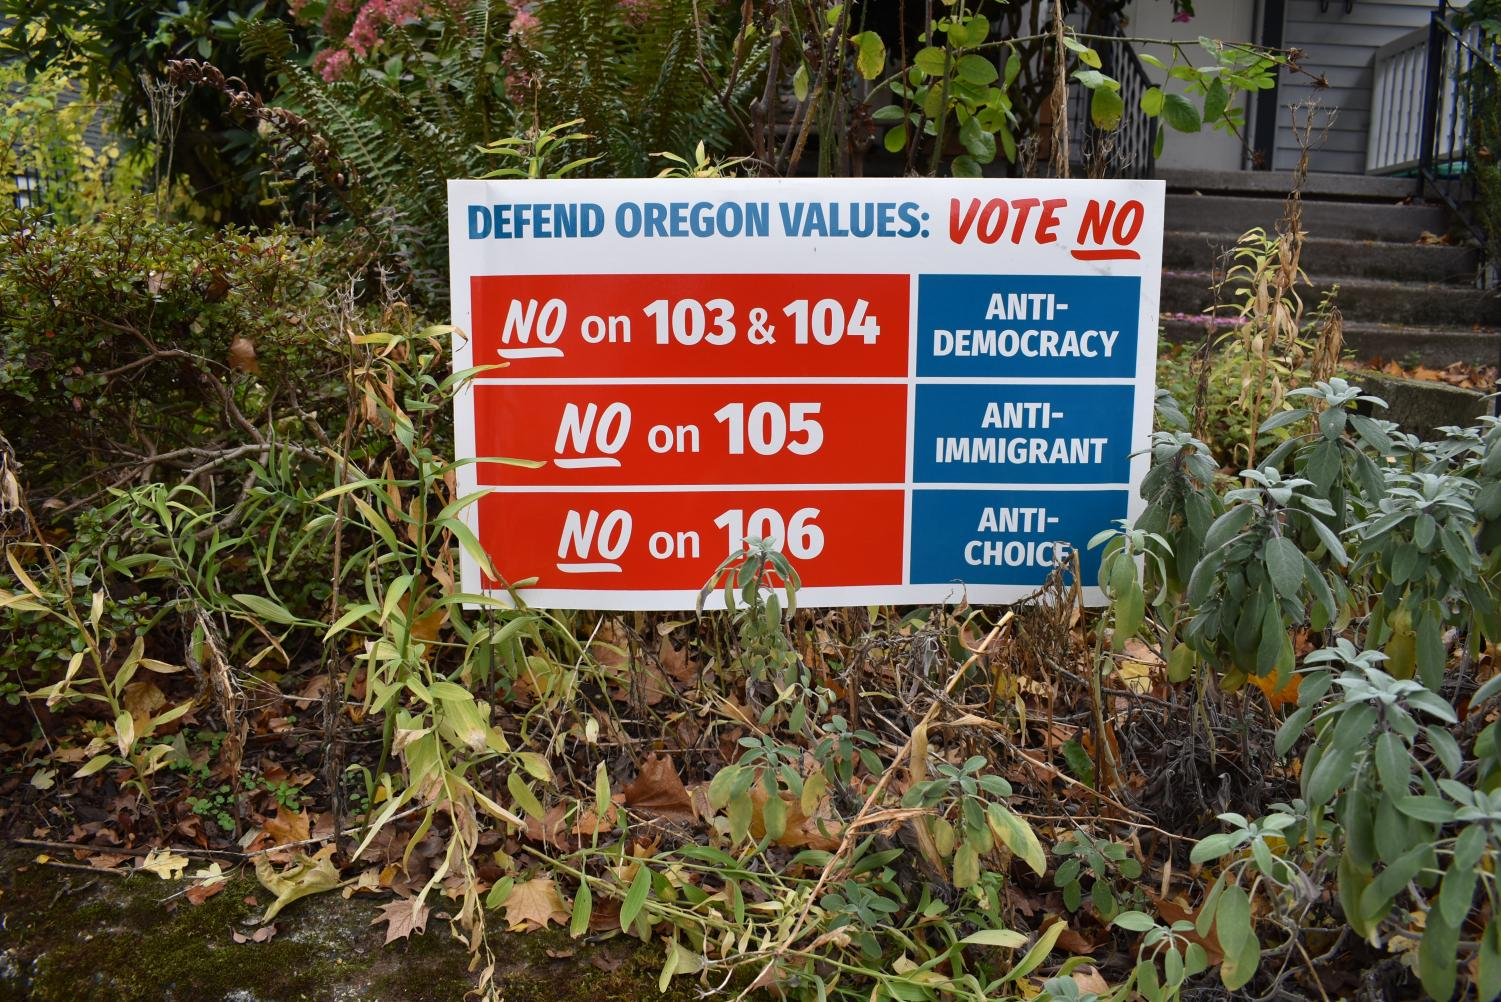 The liberal group Defend Oregon urged a